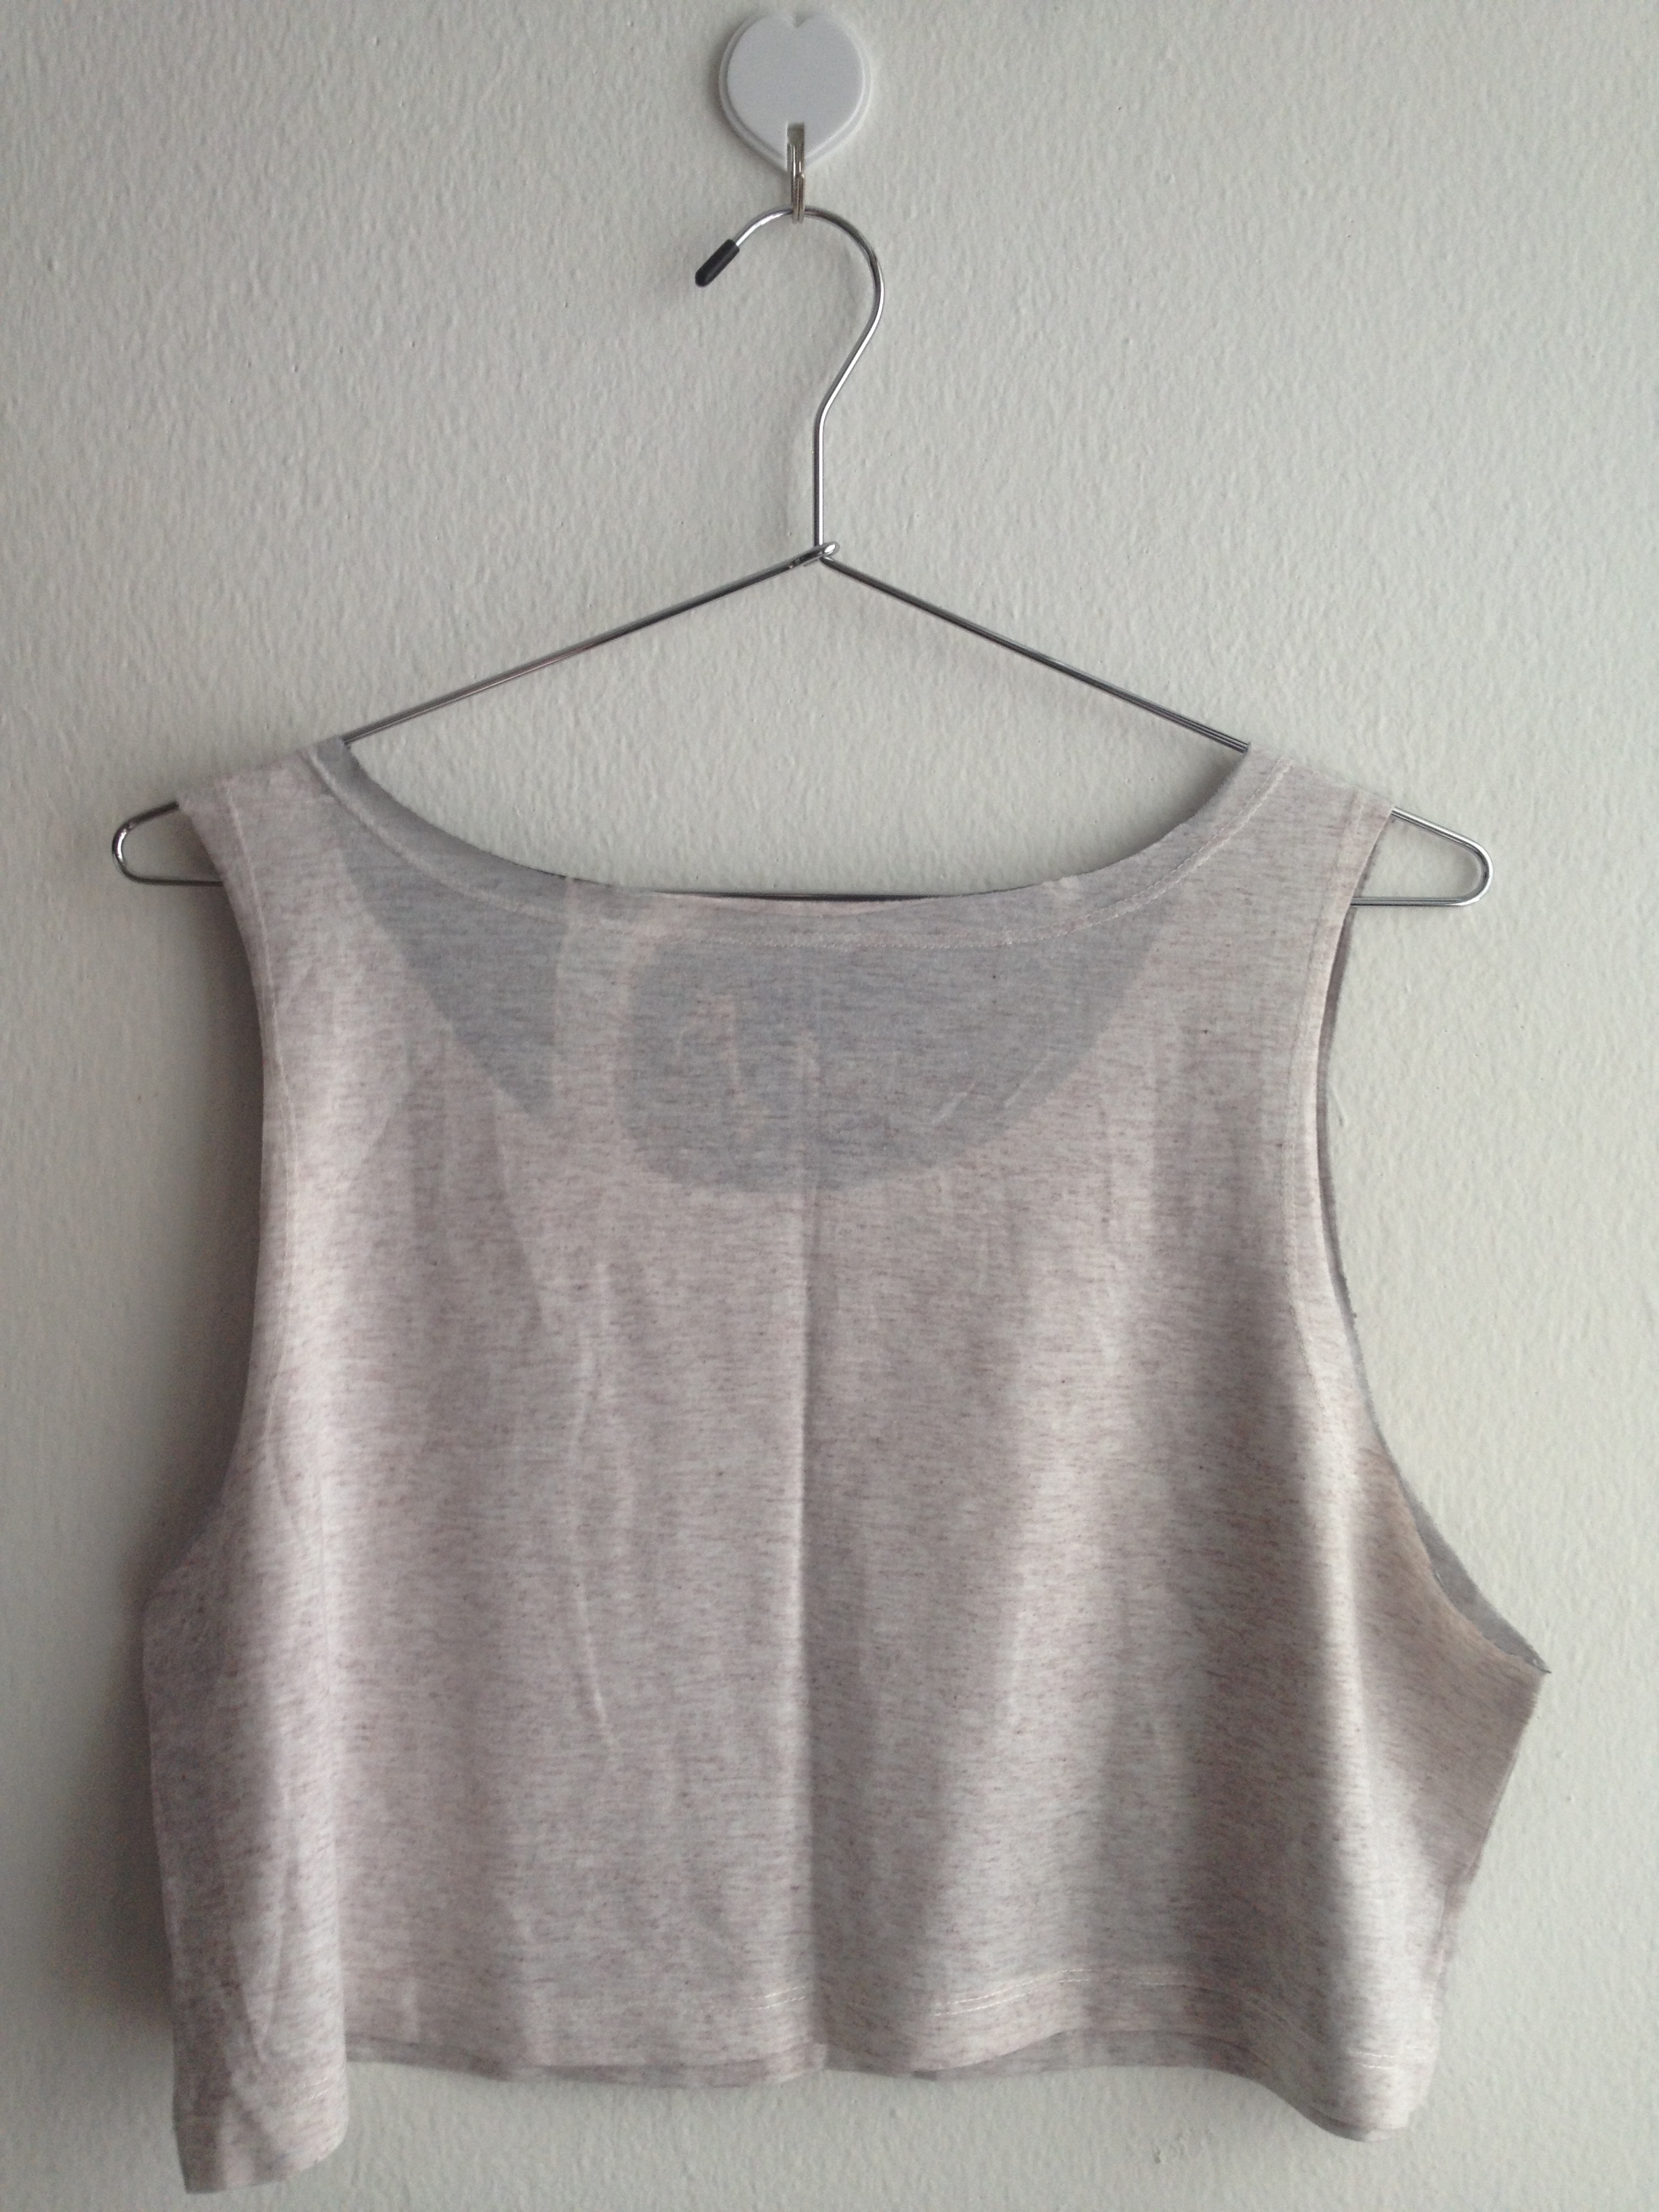 astronaut_fashion_crop_top_tank_top_tanks_tops_and_camis_4.JPG